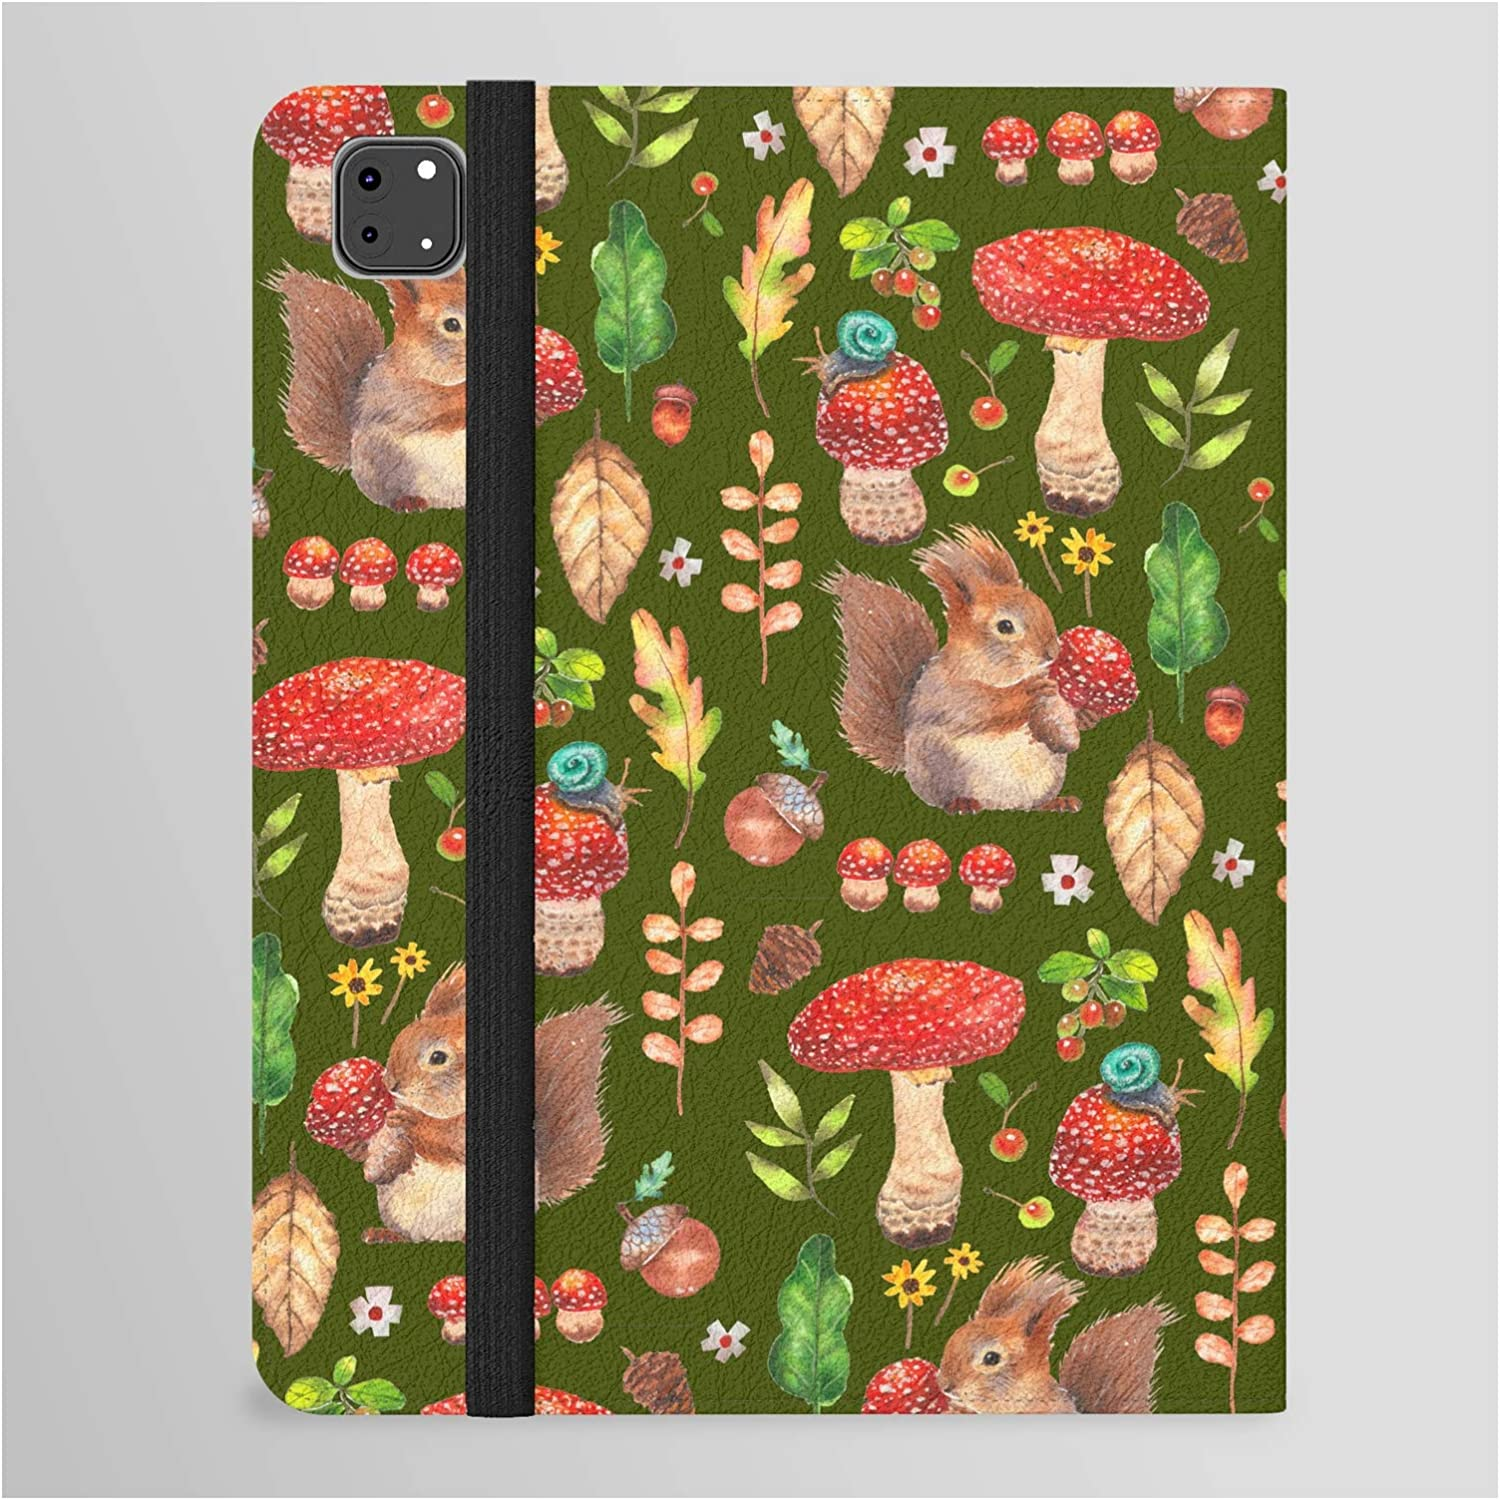 Red Mushrooms and Minneapolis Mall Friends - Overseas parallel import regular item Gbg Folio C Tablet by Janeferwong on